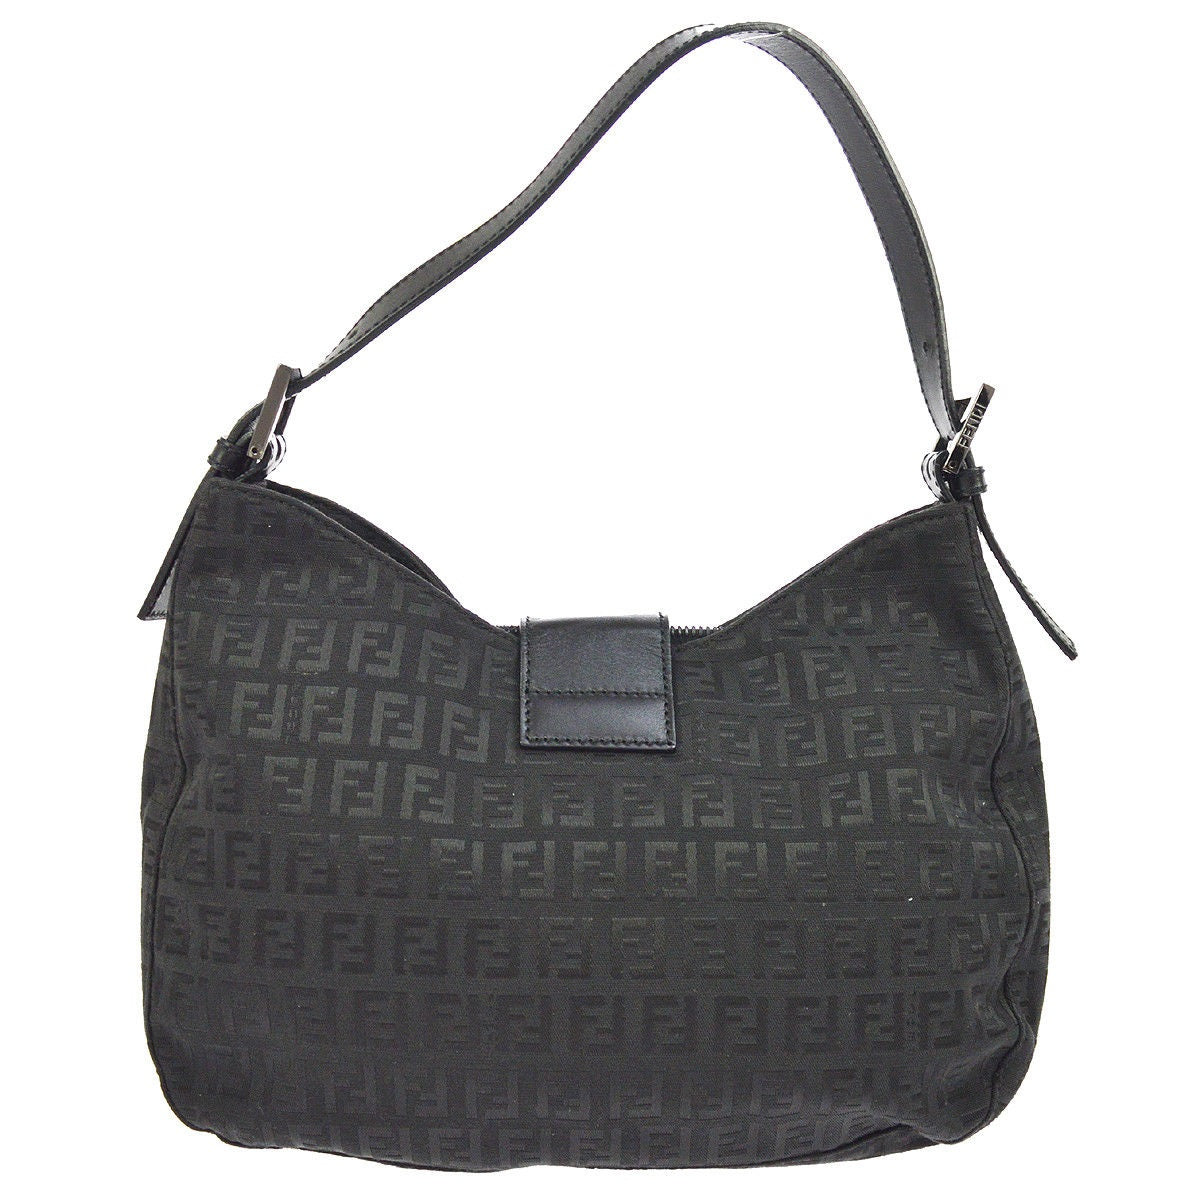 83bf7eac4b ... Fendi Black Canvas Leather Zucchino Shoulder Bag the real real ...